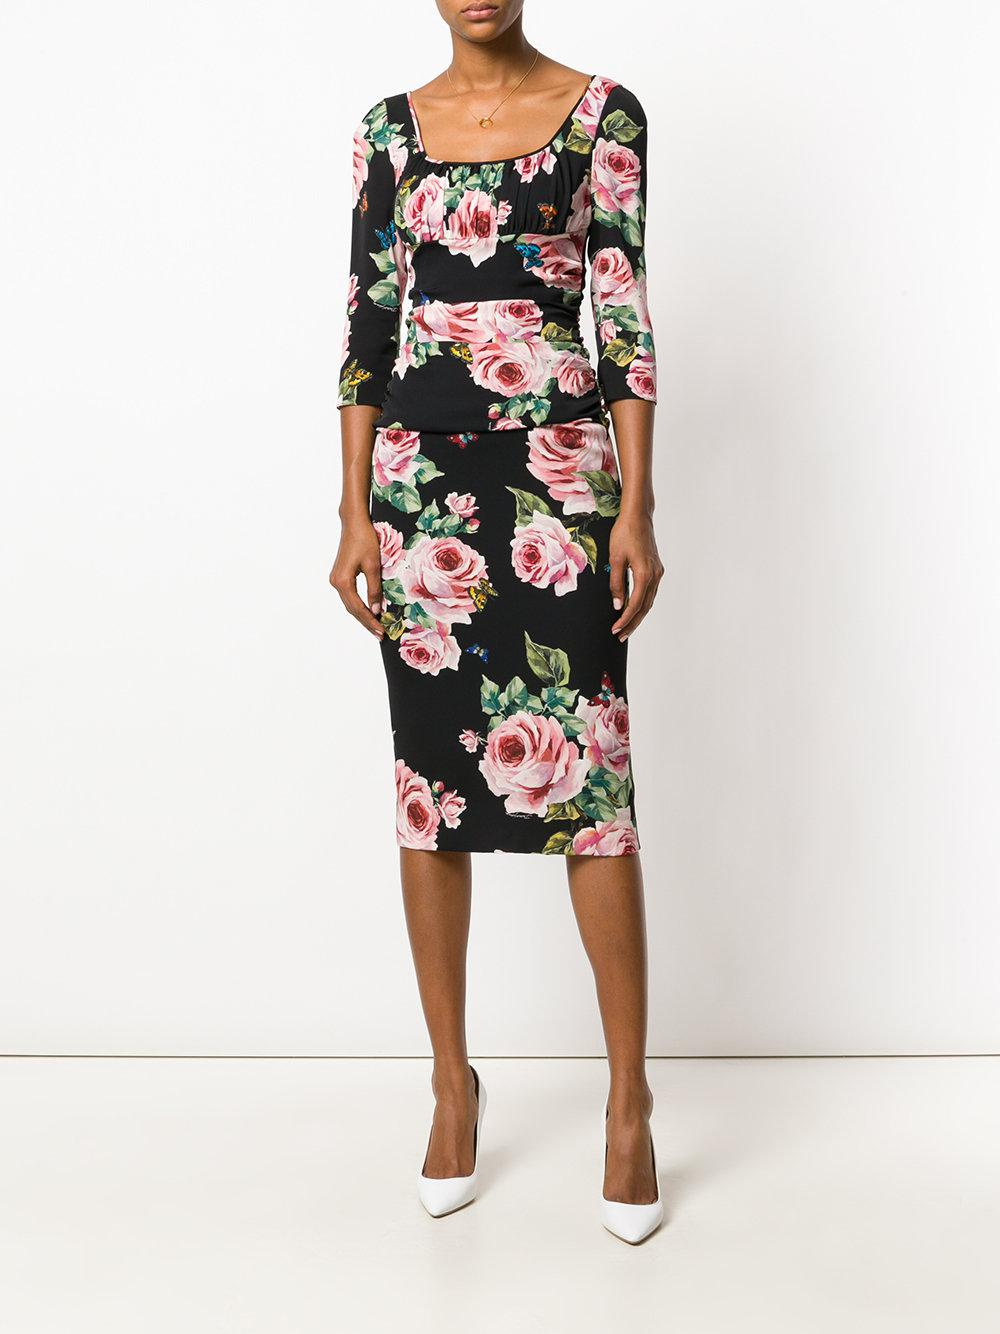 33ca8d80 Dolce & Gabbana floral print dress at Farfetch - EDITED - EDITED